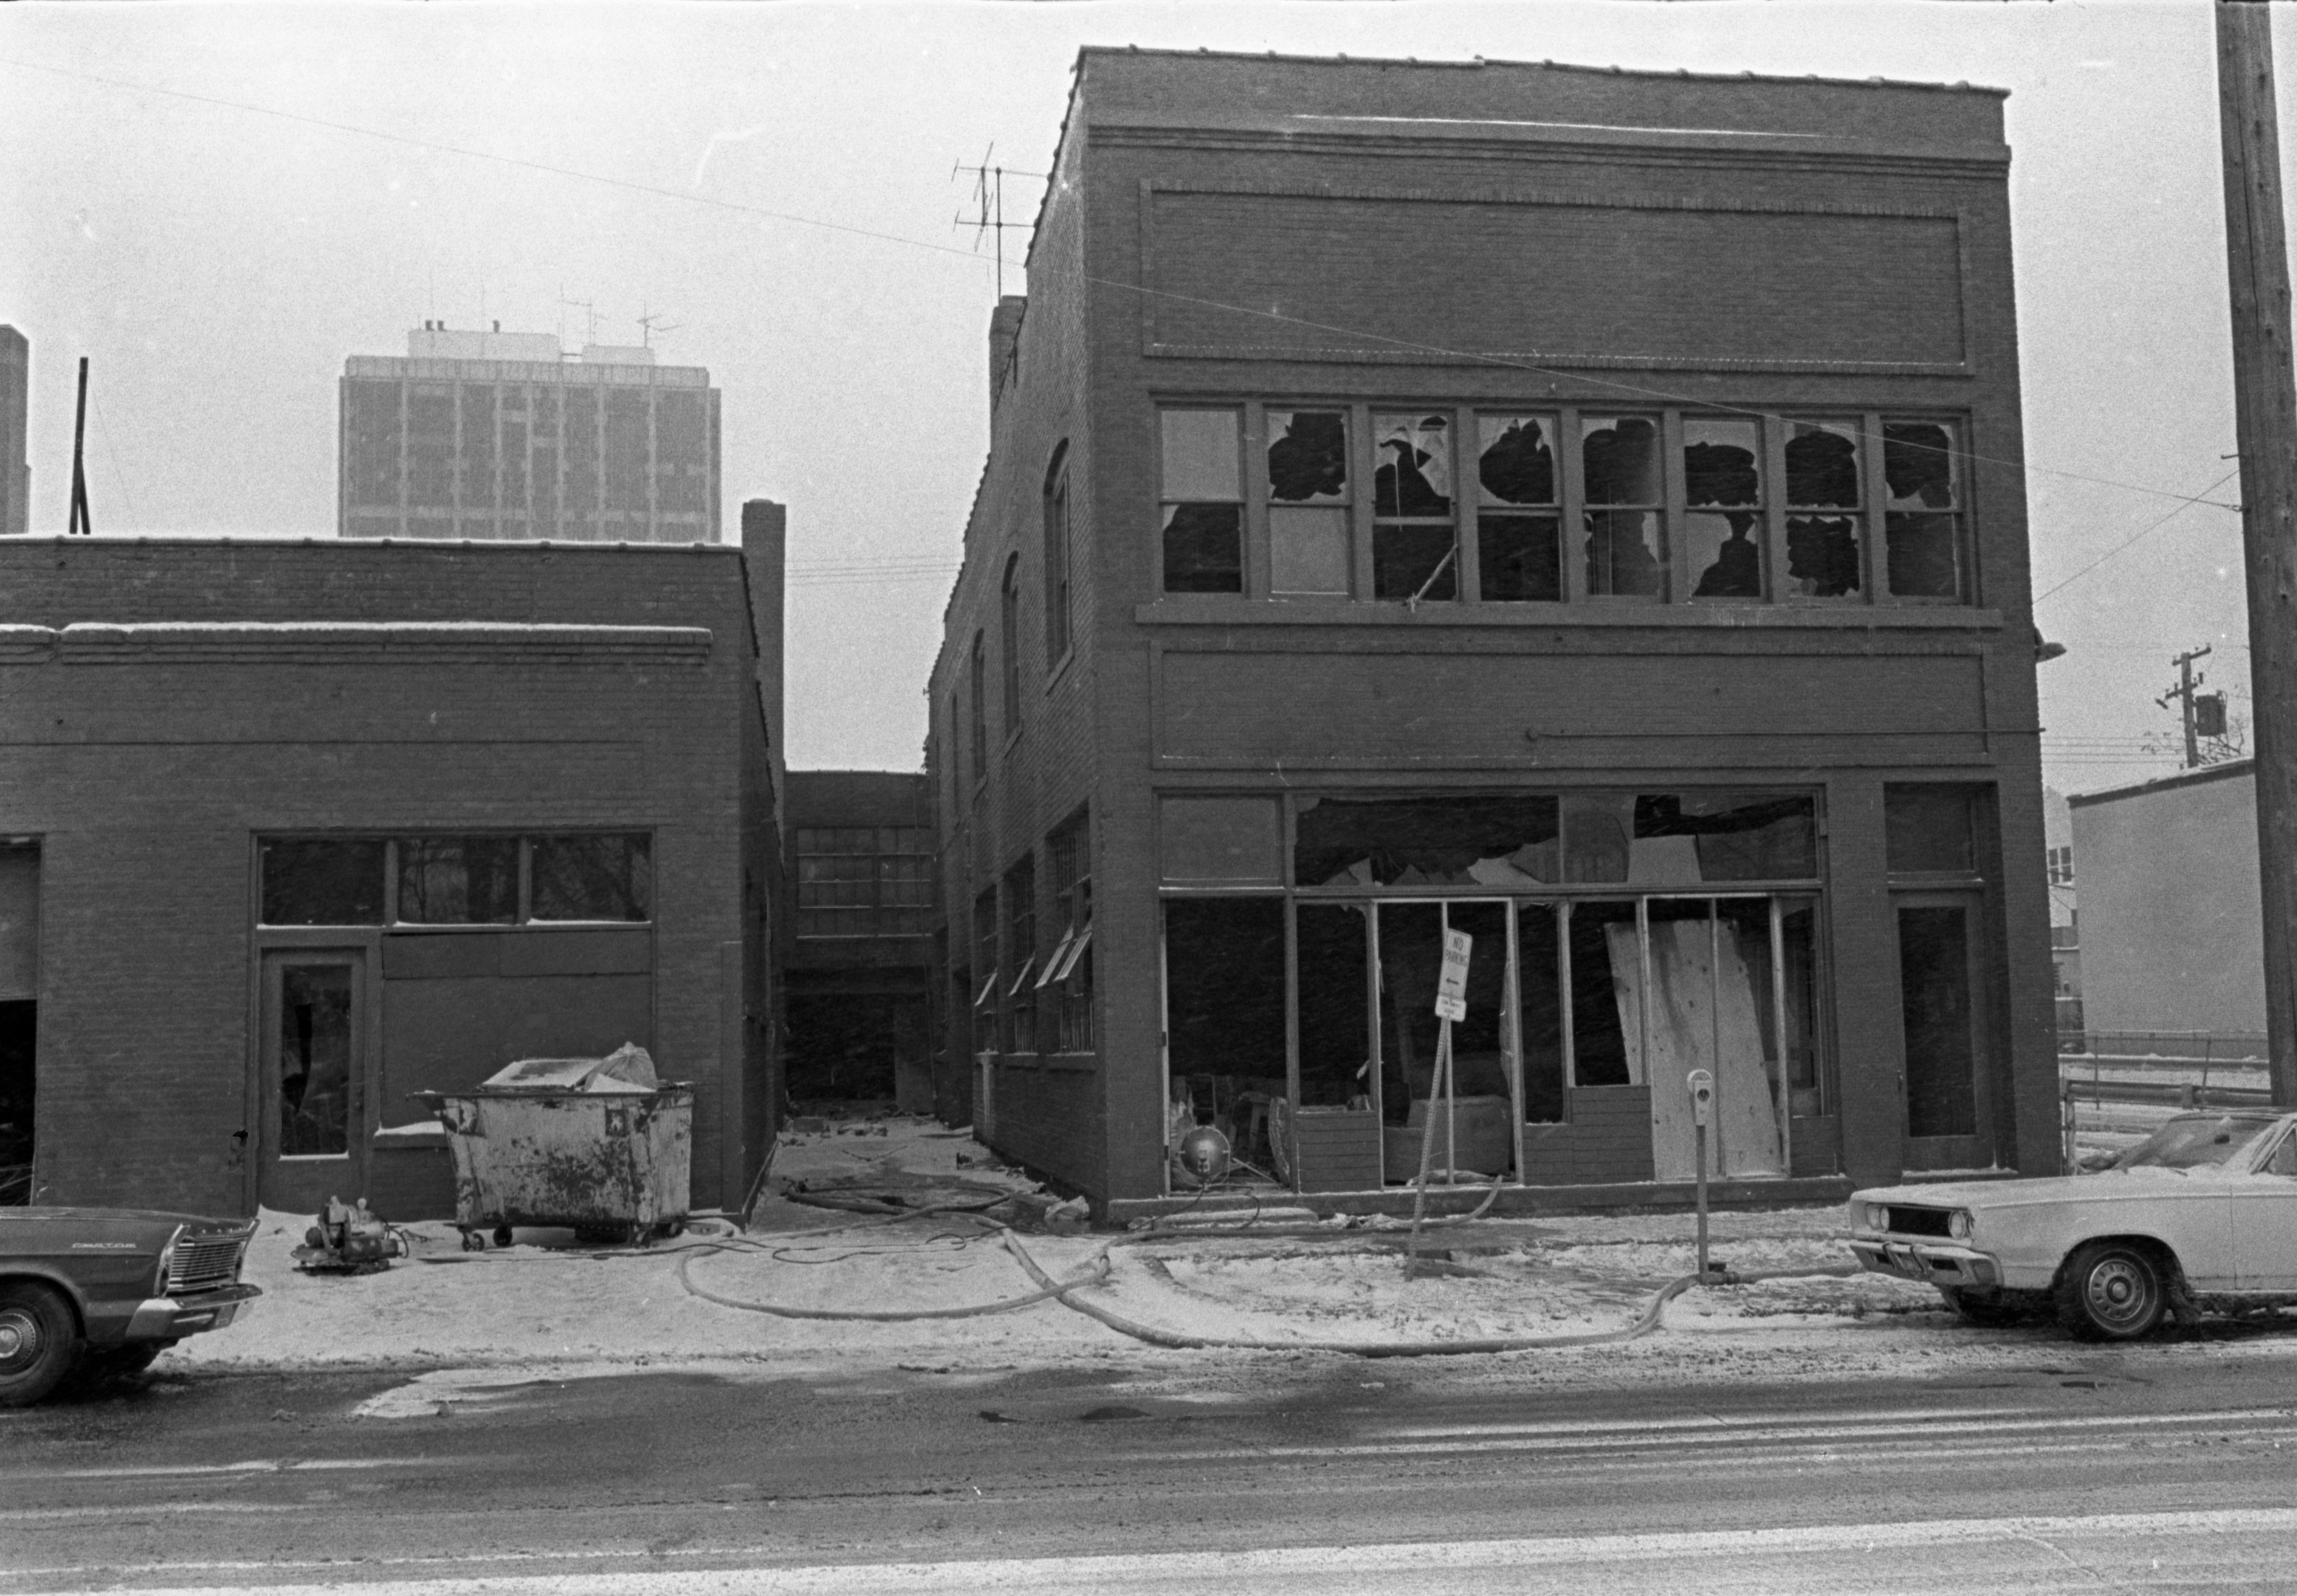 Community Center At 502 E. Washington Exterior After Fire, December 16, 1972 image